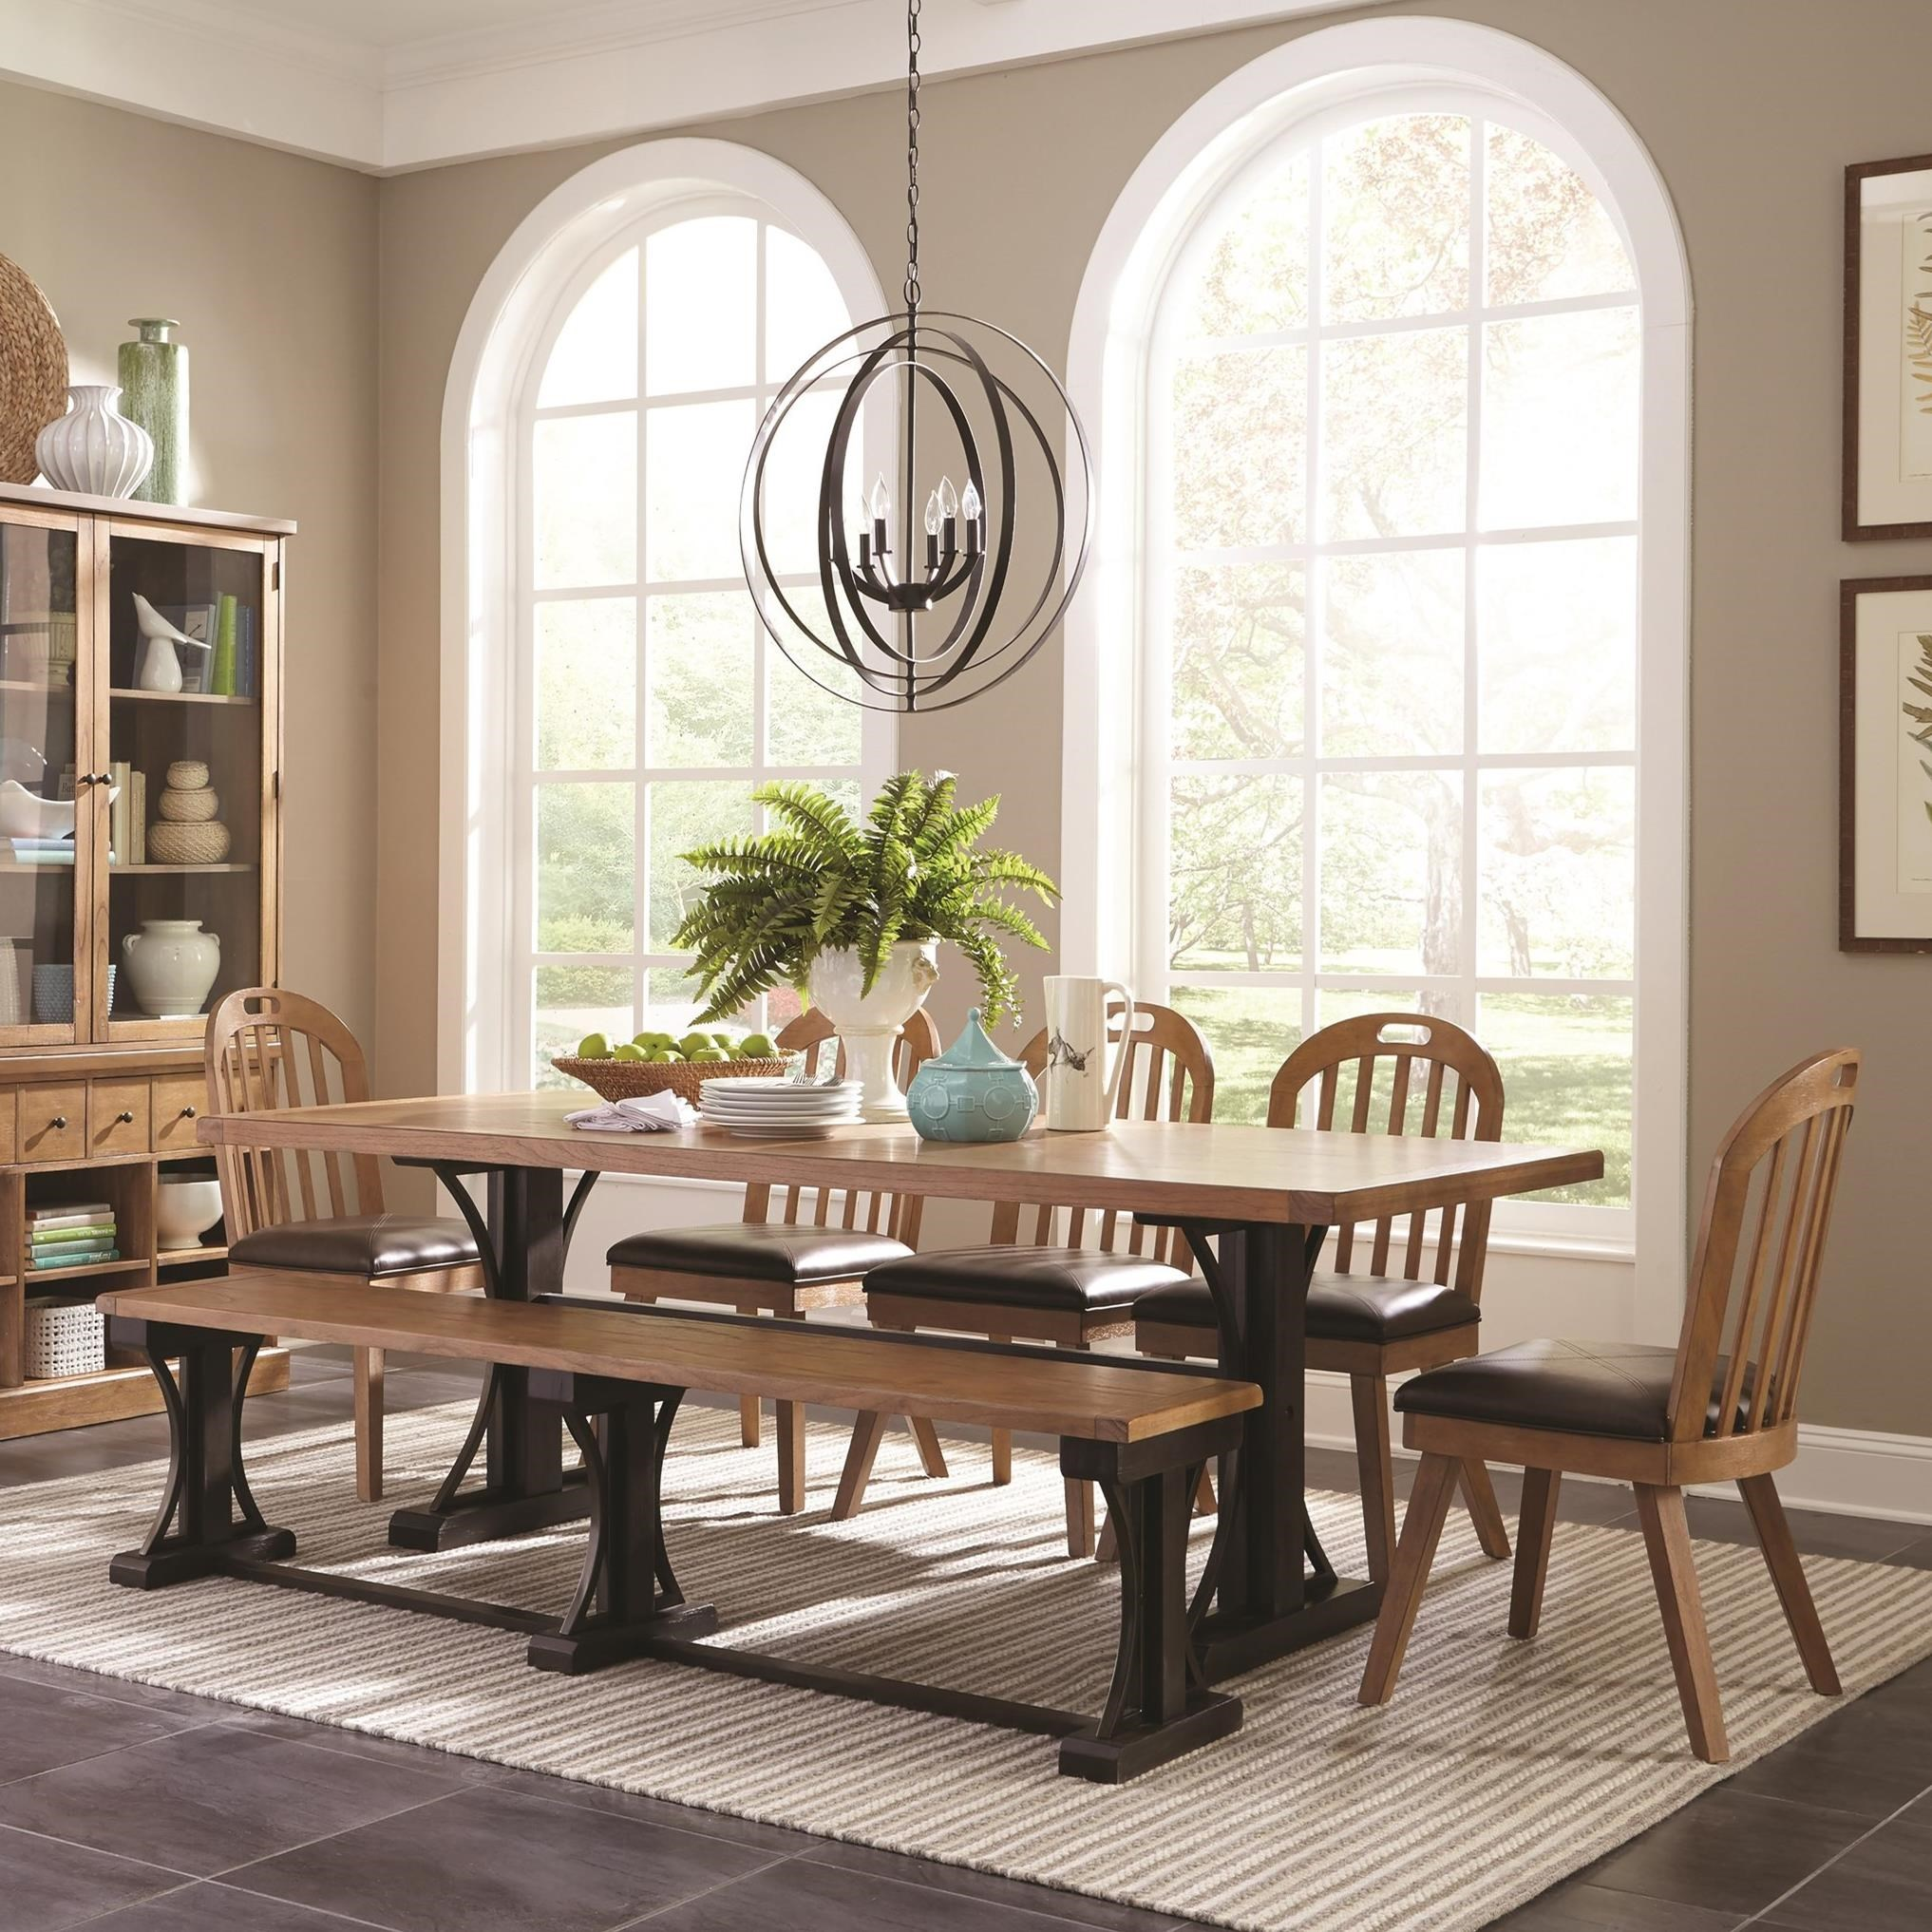 French farmhouse dining table set with bench by scott for French farmhouse dining chairs